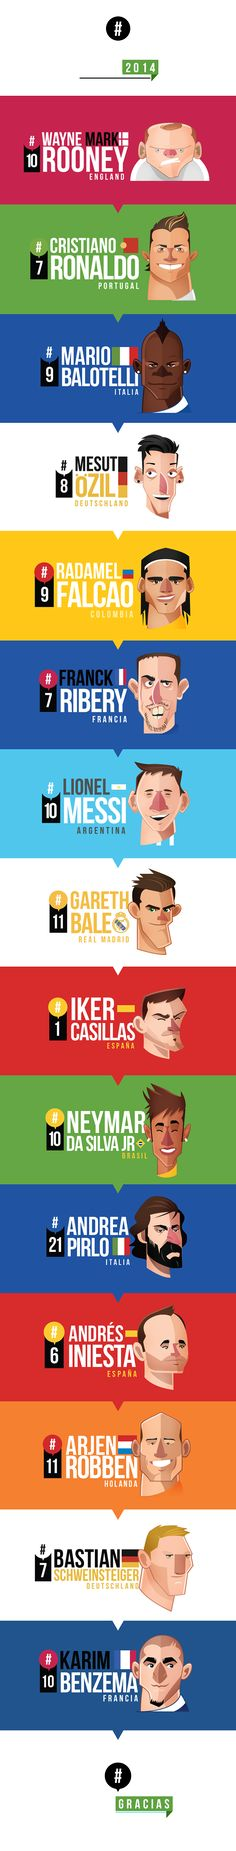 Some din't make it to the WC14 like Falcao MUNDIALISTAS by Edgar Rozo, via Behance